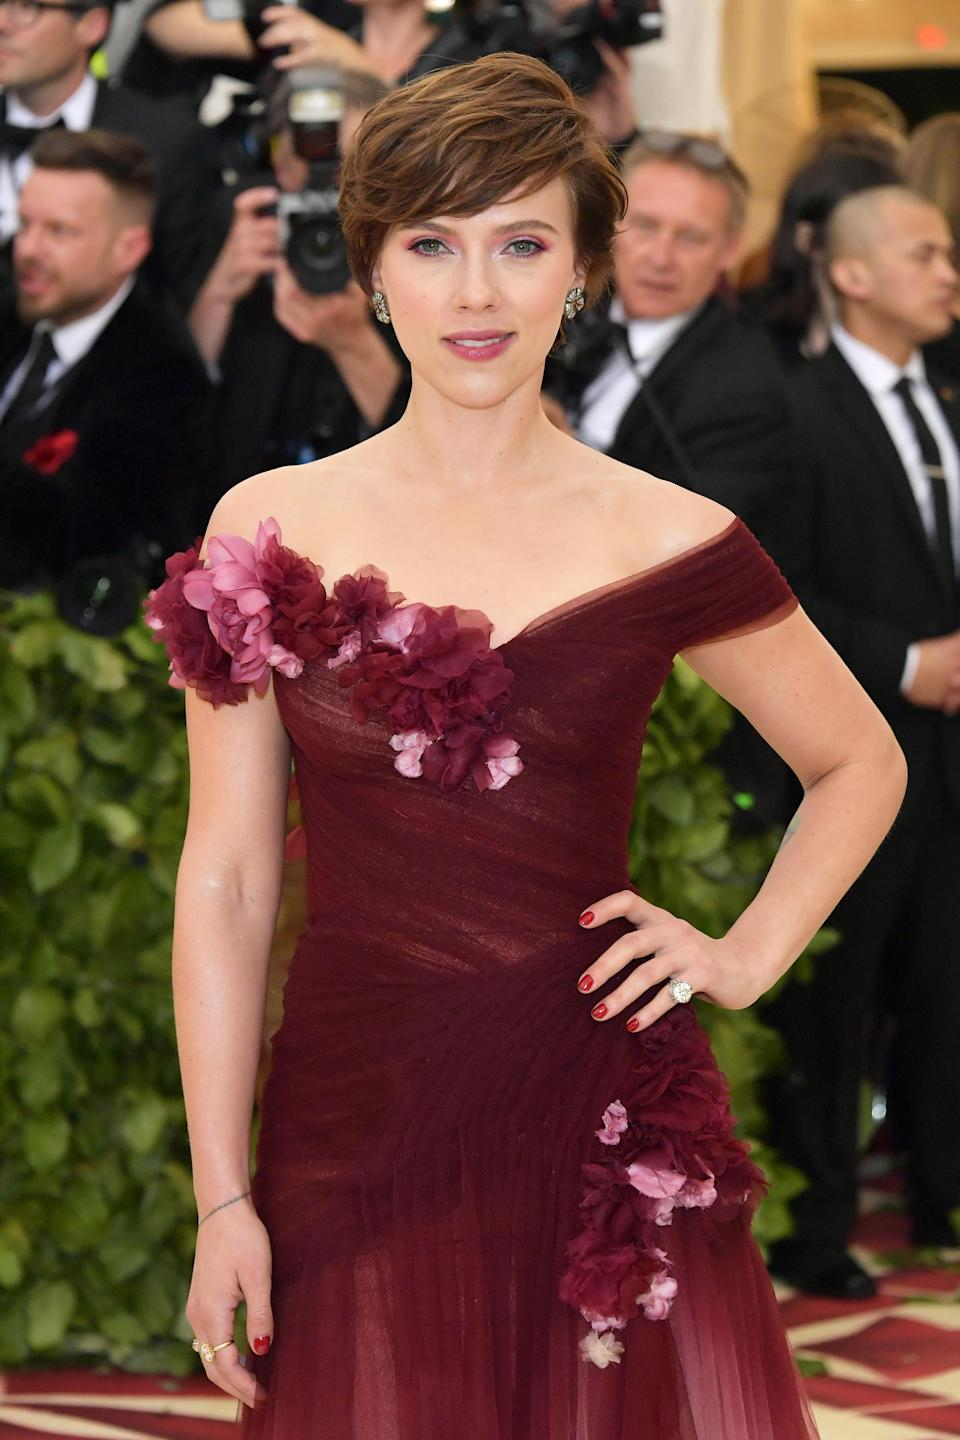 Johansson's Marchesa dress raised eyebrows. (Photo: Neilson Barnard/Getty Images)